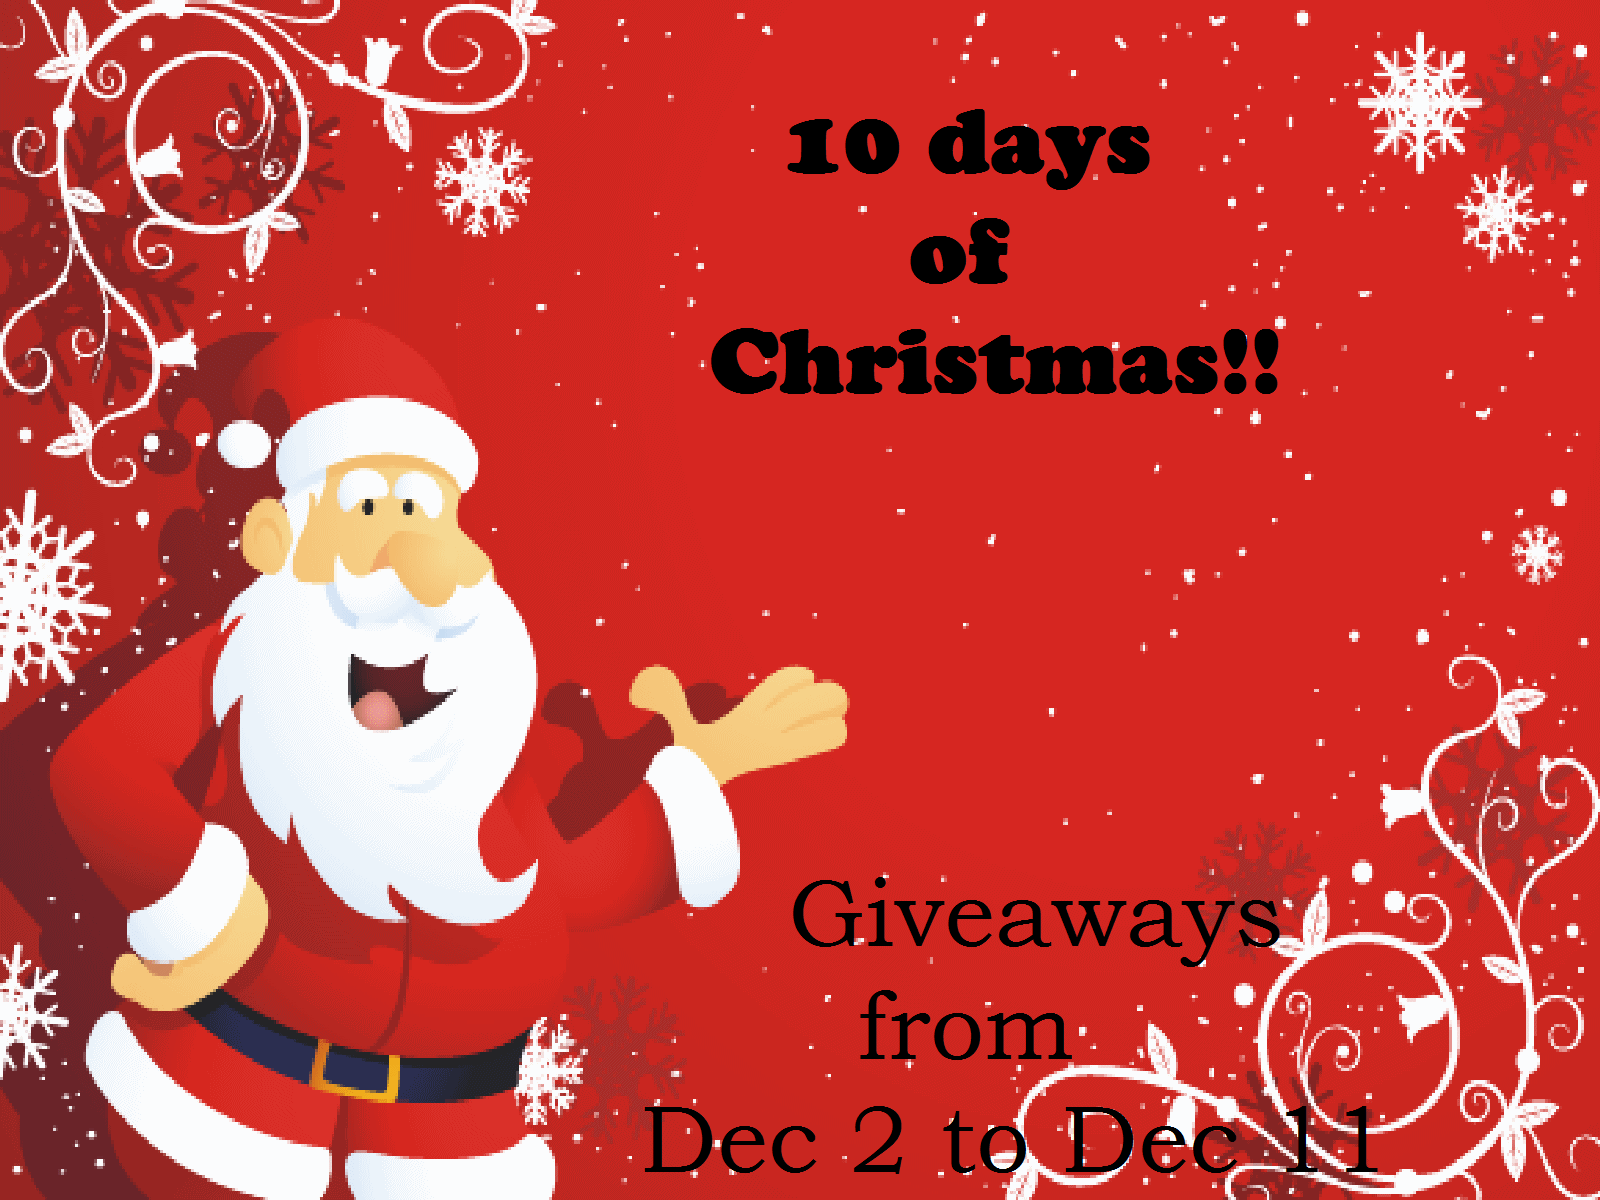 come back in december if you want to win signup below if you want to join the party and promote the event 10 days of christmas